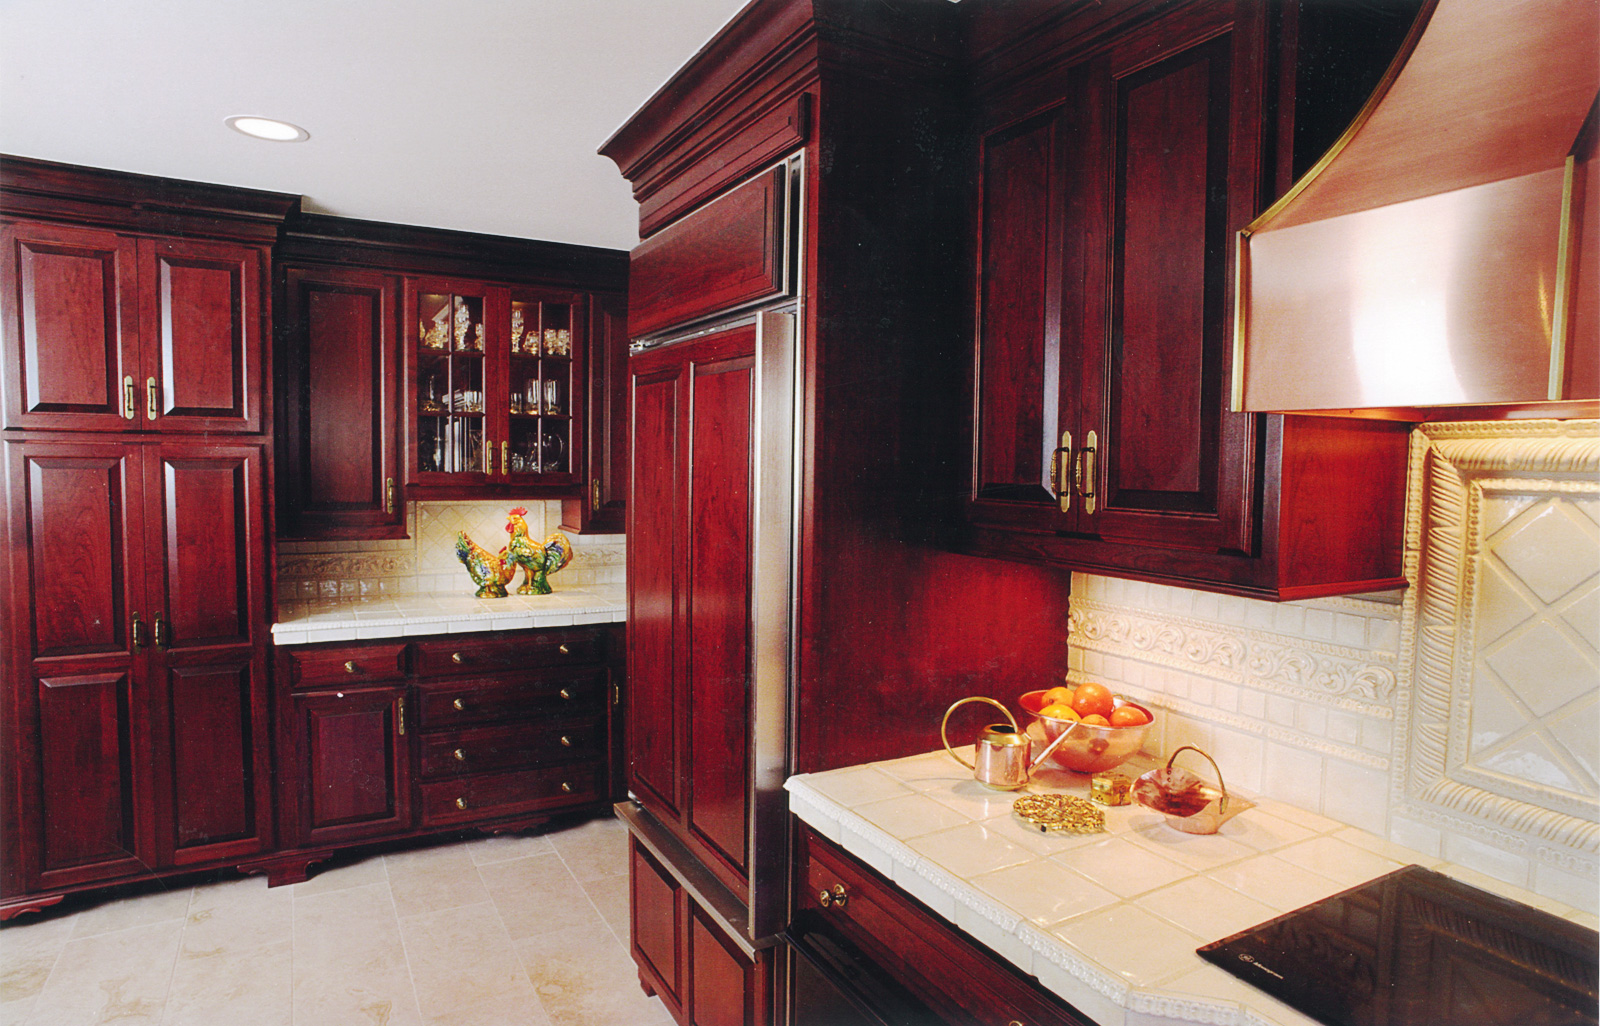 Side view of Custom Cherrywood Kitchen with paneled refrigerator and walls.